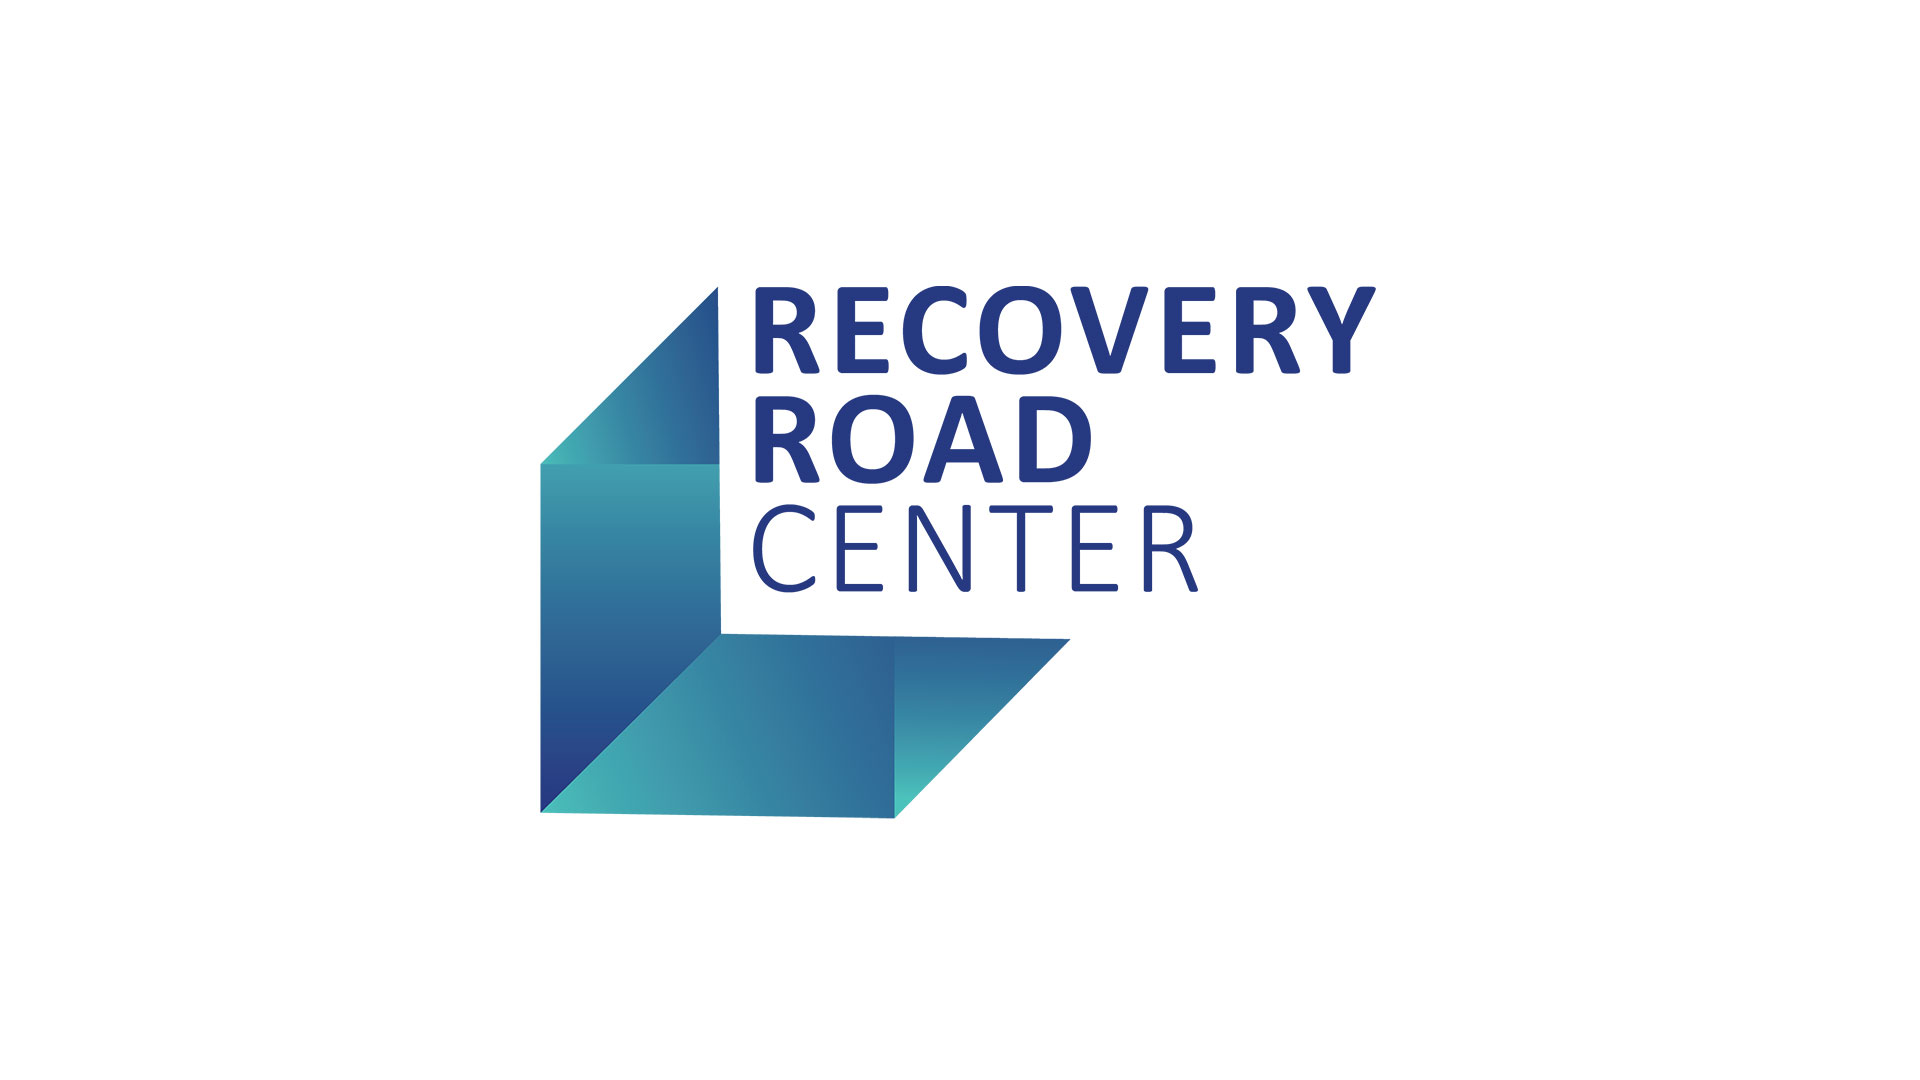 Recovery road center